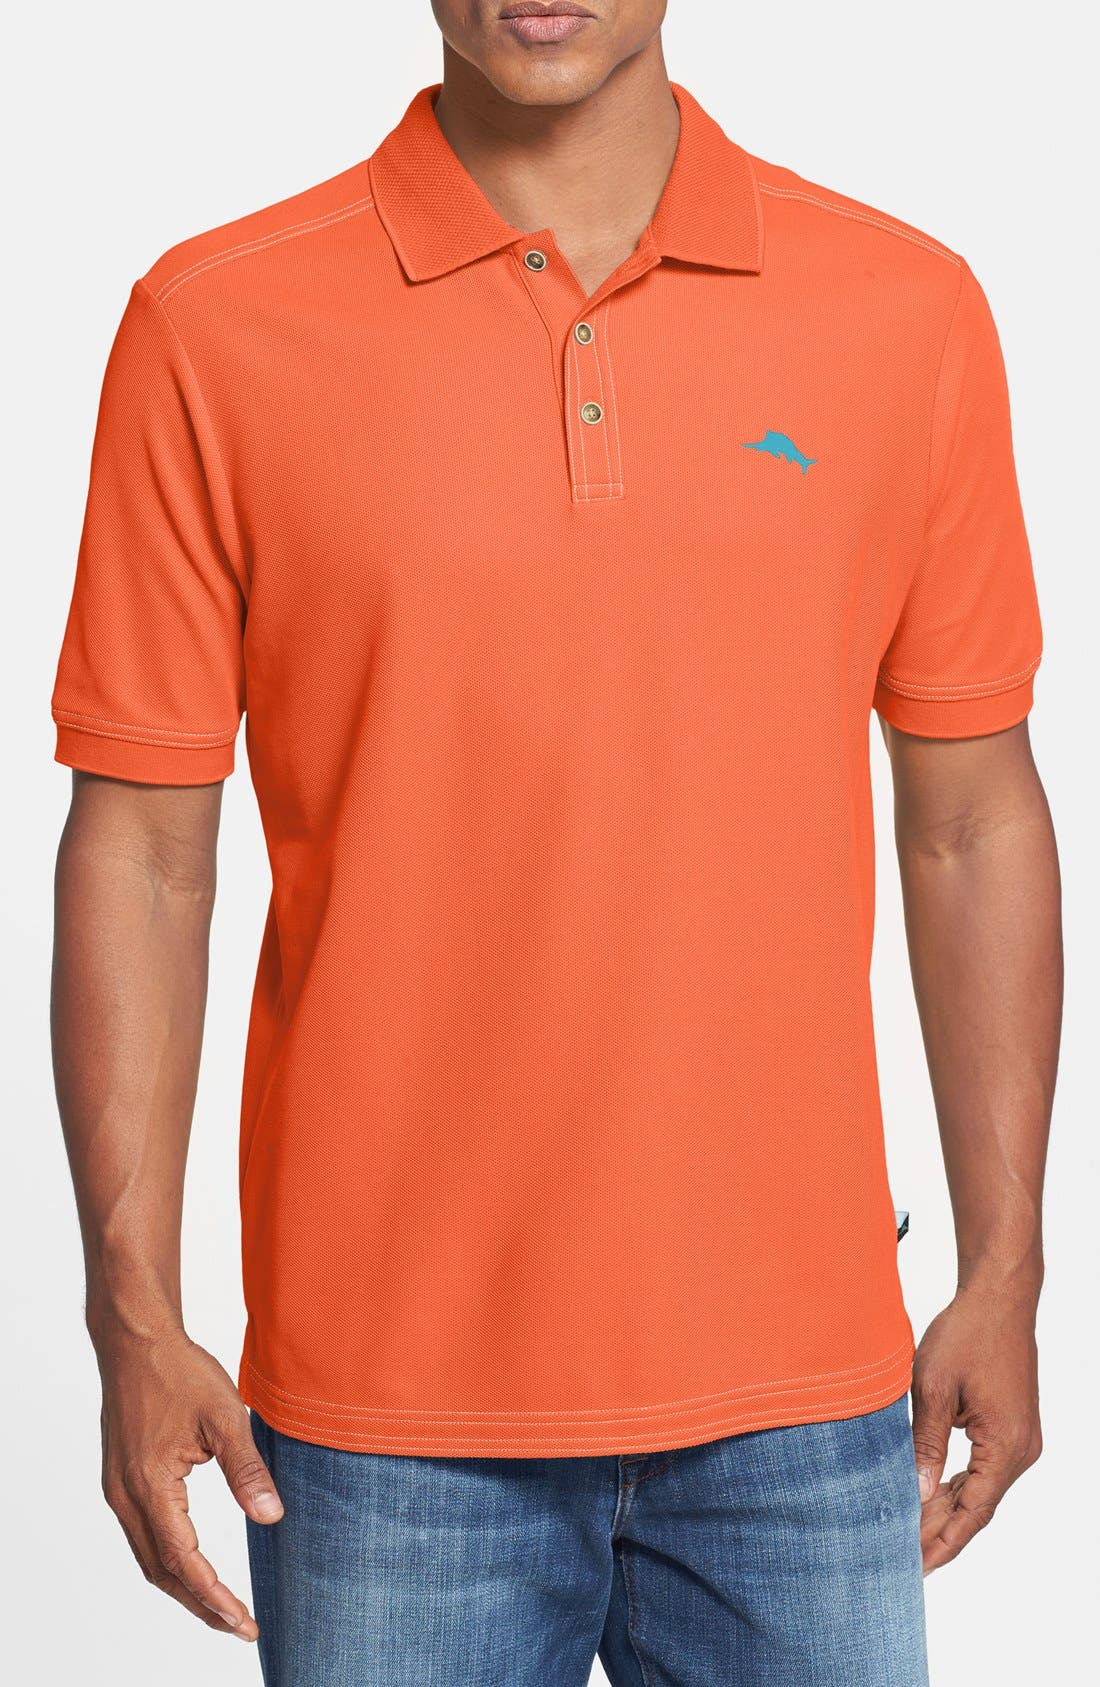 'The Emfielder' Original Fit Piqué Polo,                             Main thumbnail 117, color,